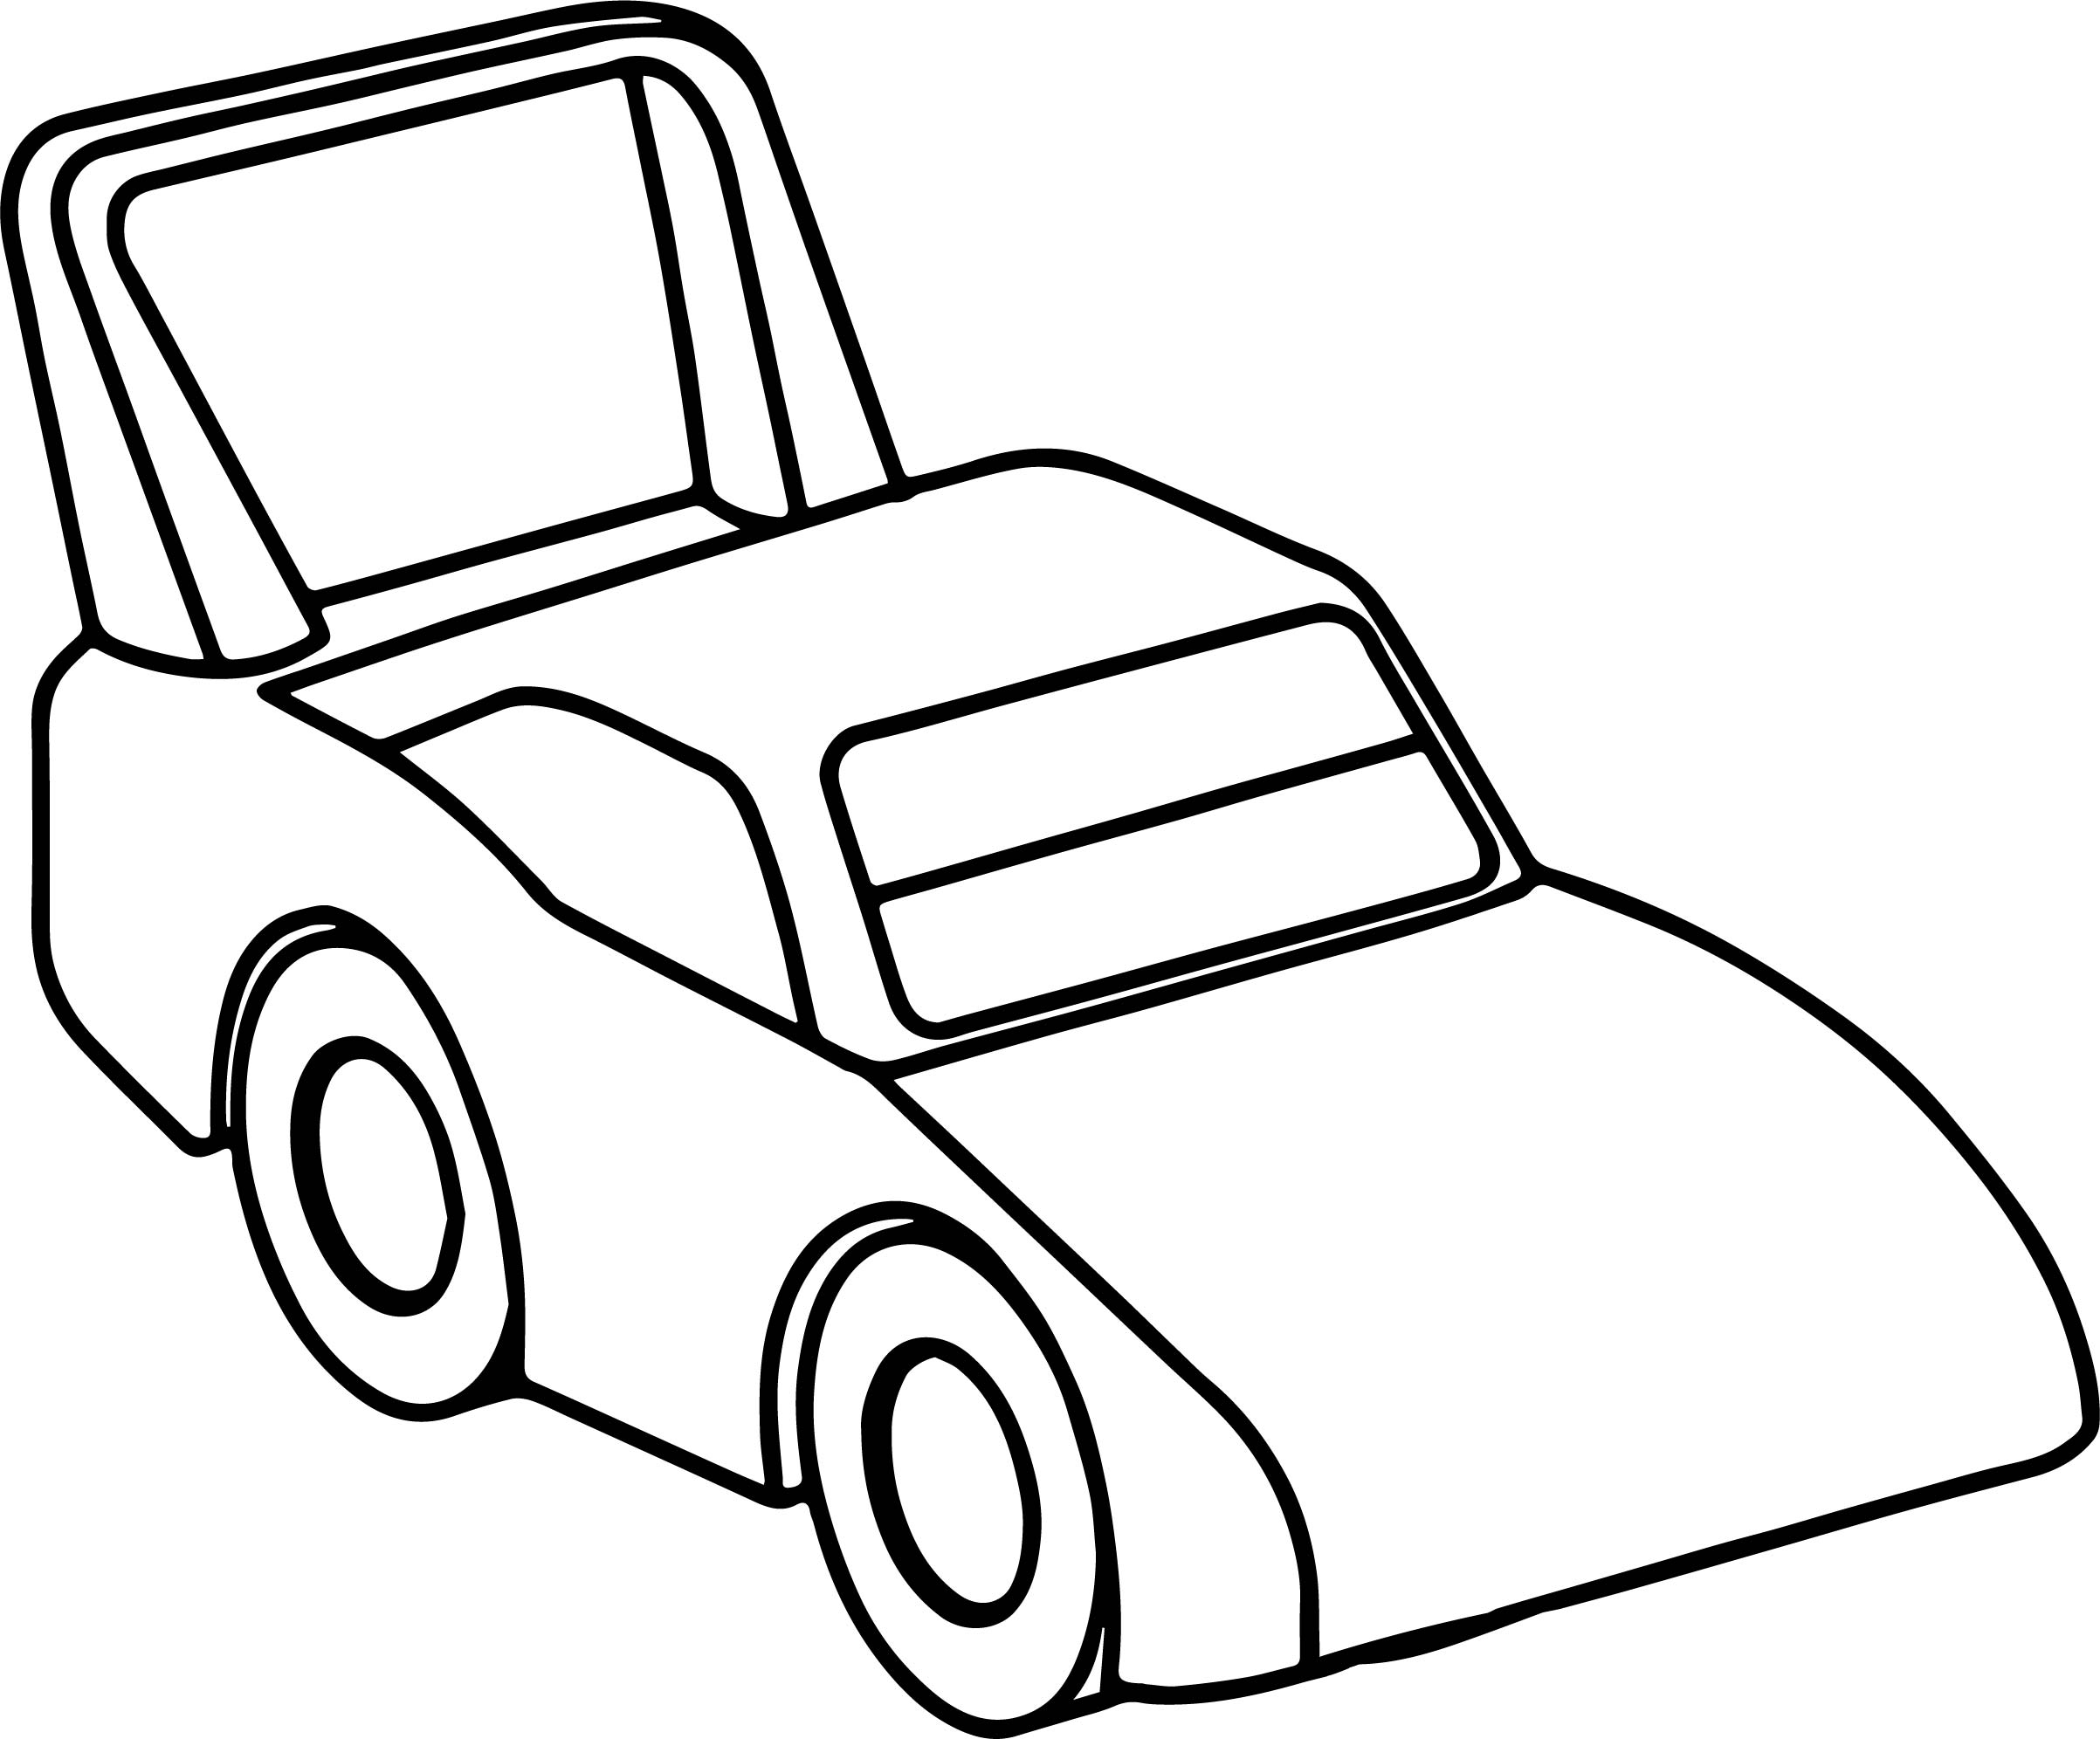 Race Toy Car Coloring Page Wecoloringpage